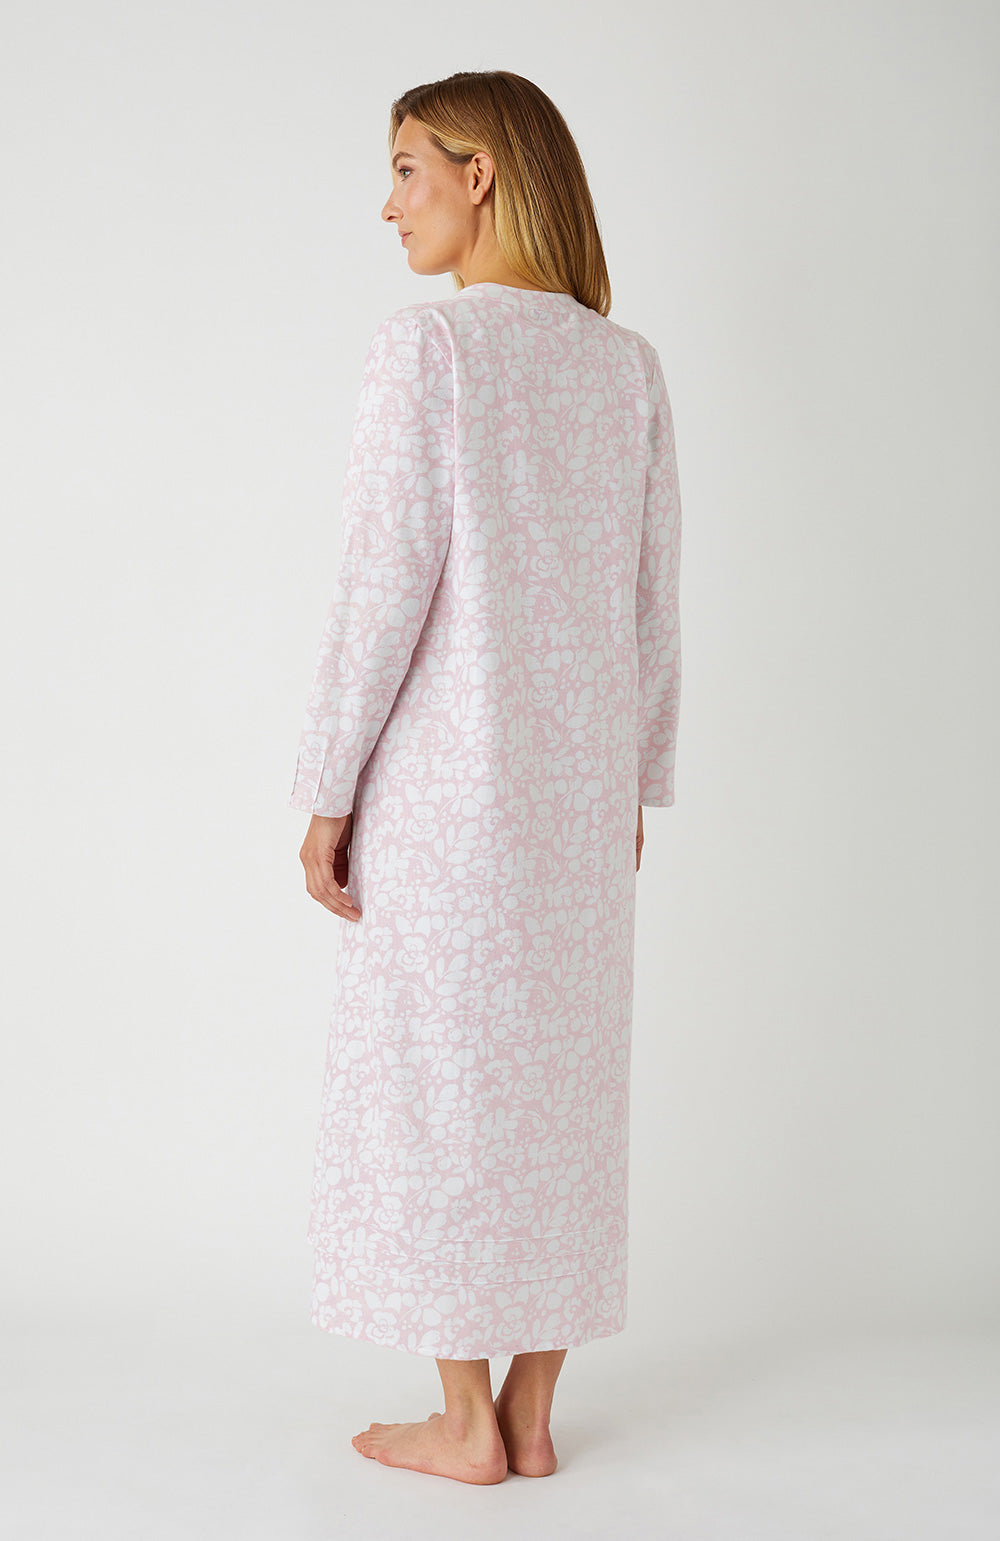 Sophie Pink Floral Nightdress | Bonsoir of London